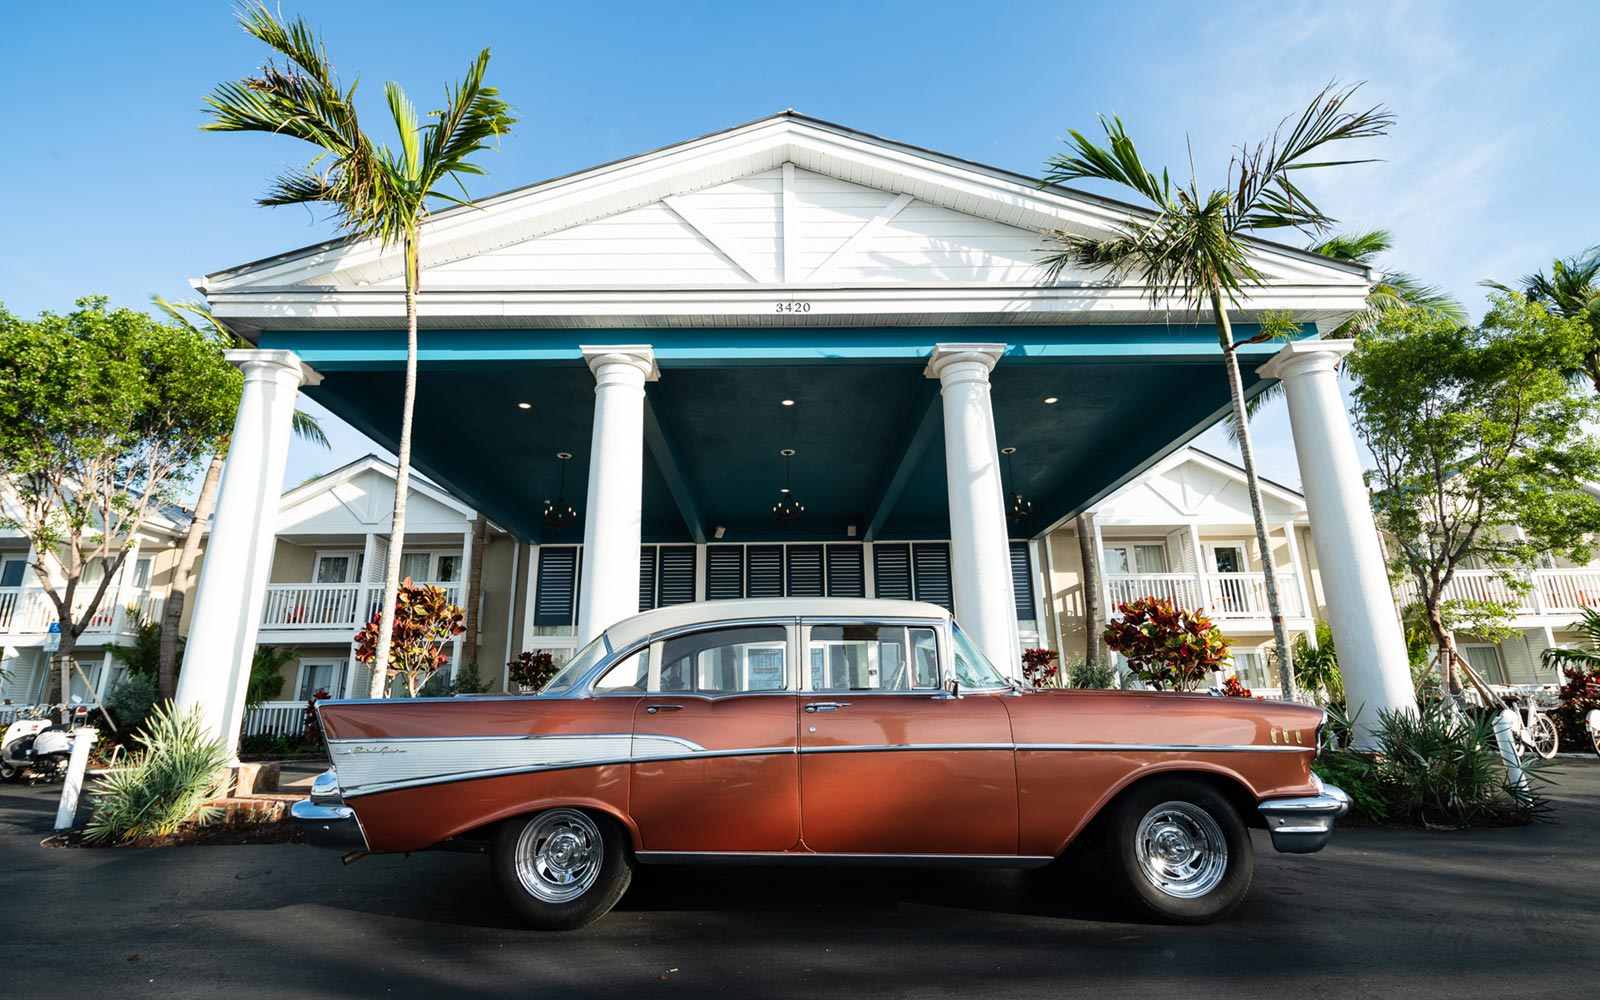 This Cuban-inspired Hotel in Key West is Offering Day Trips to Havana